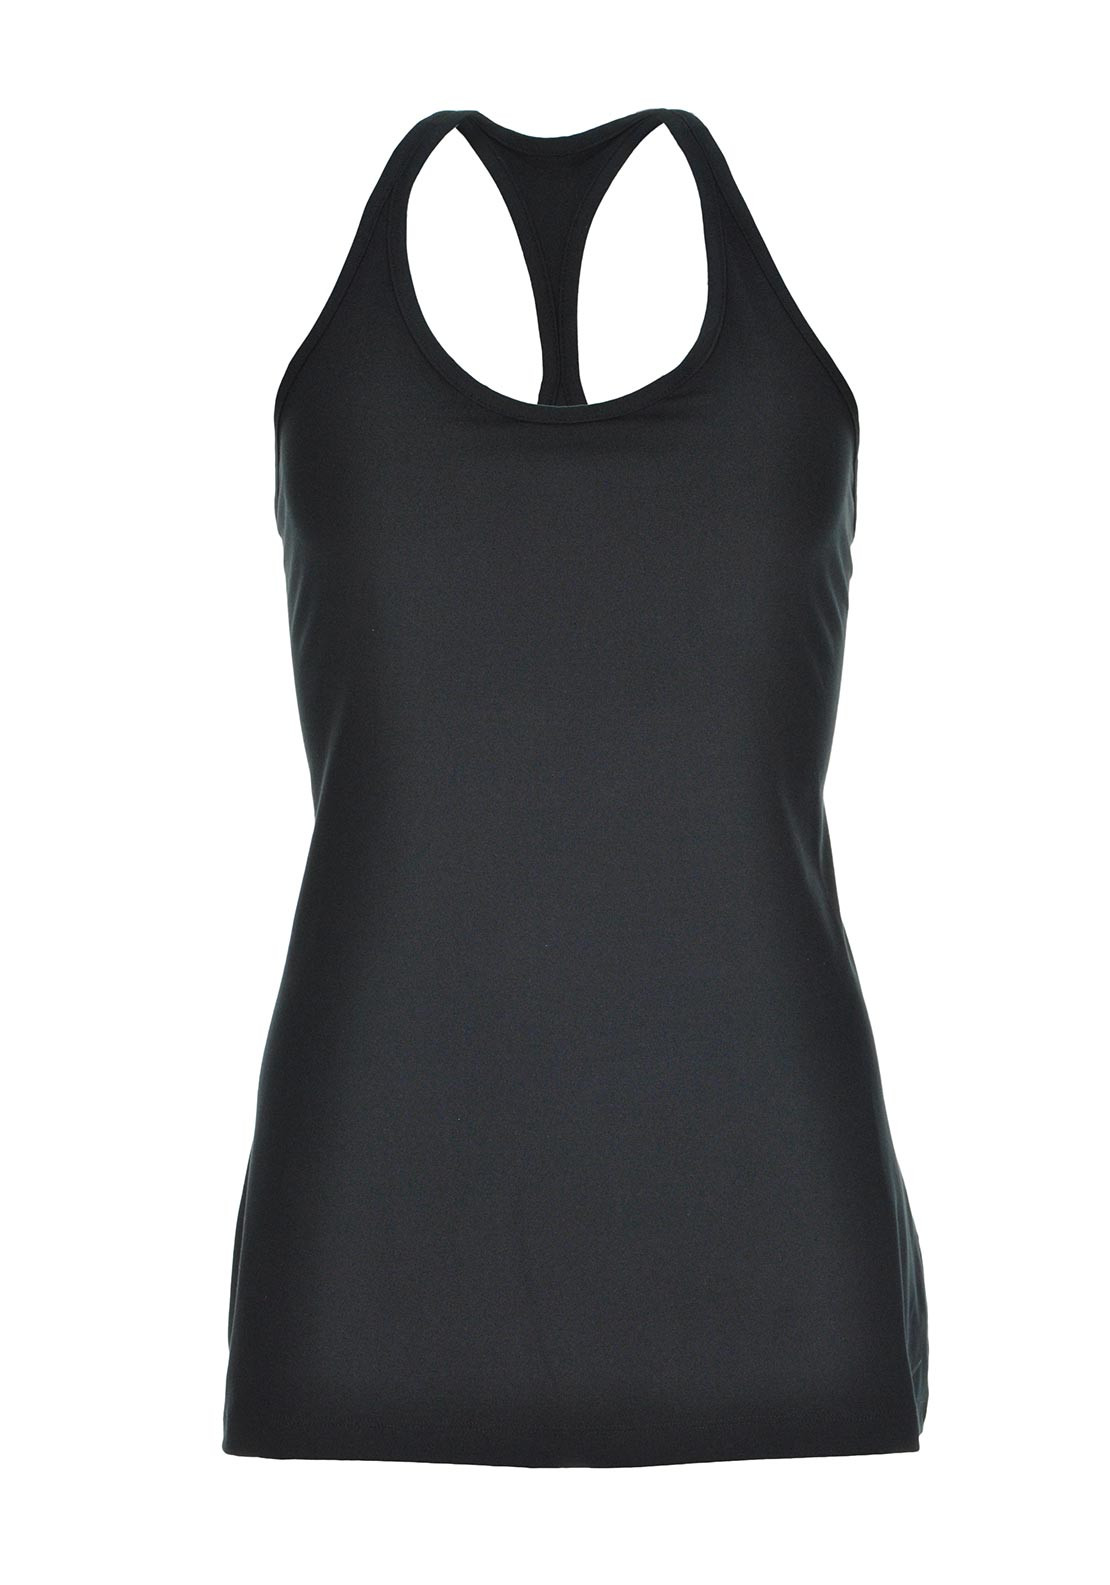 Nike Womens Get Fit Tank Top, Black